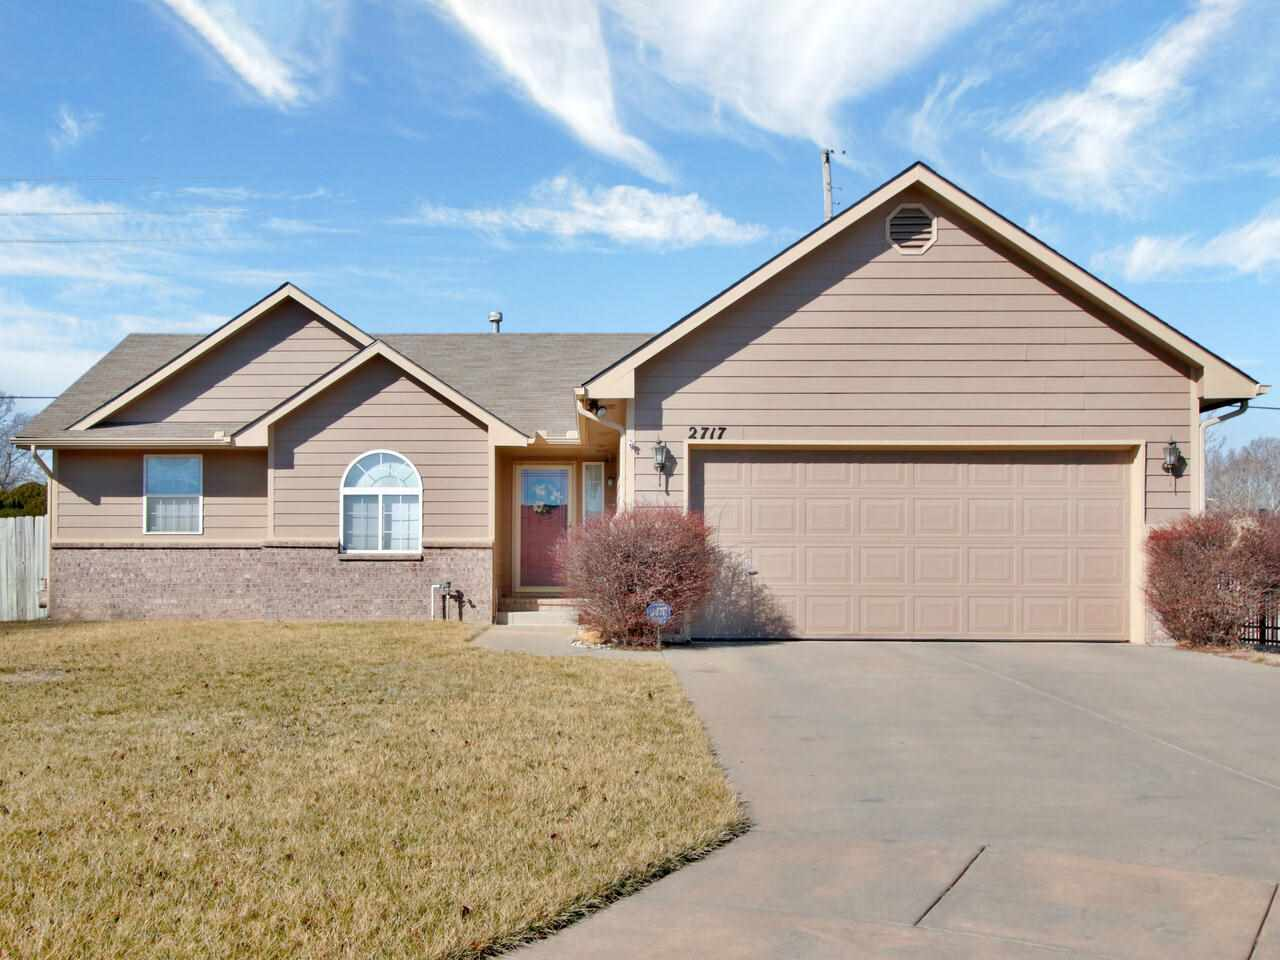 Cozy. Classy. Clean.  This sweet 4-bedroom, 3-bath ranch sits on a quiet cul-de-sac in NE Wichita. W